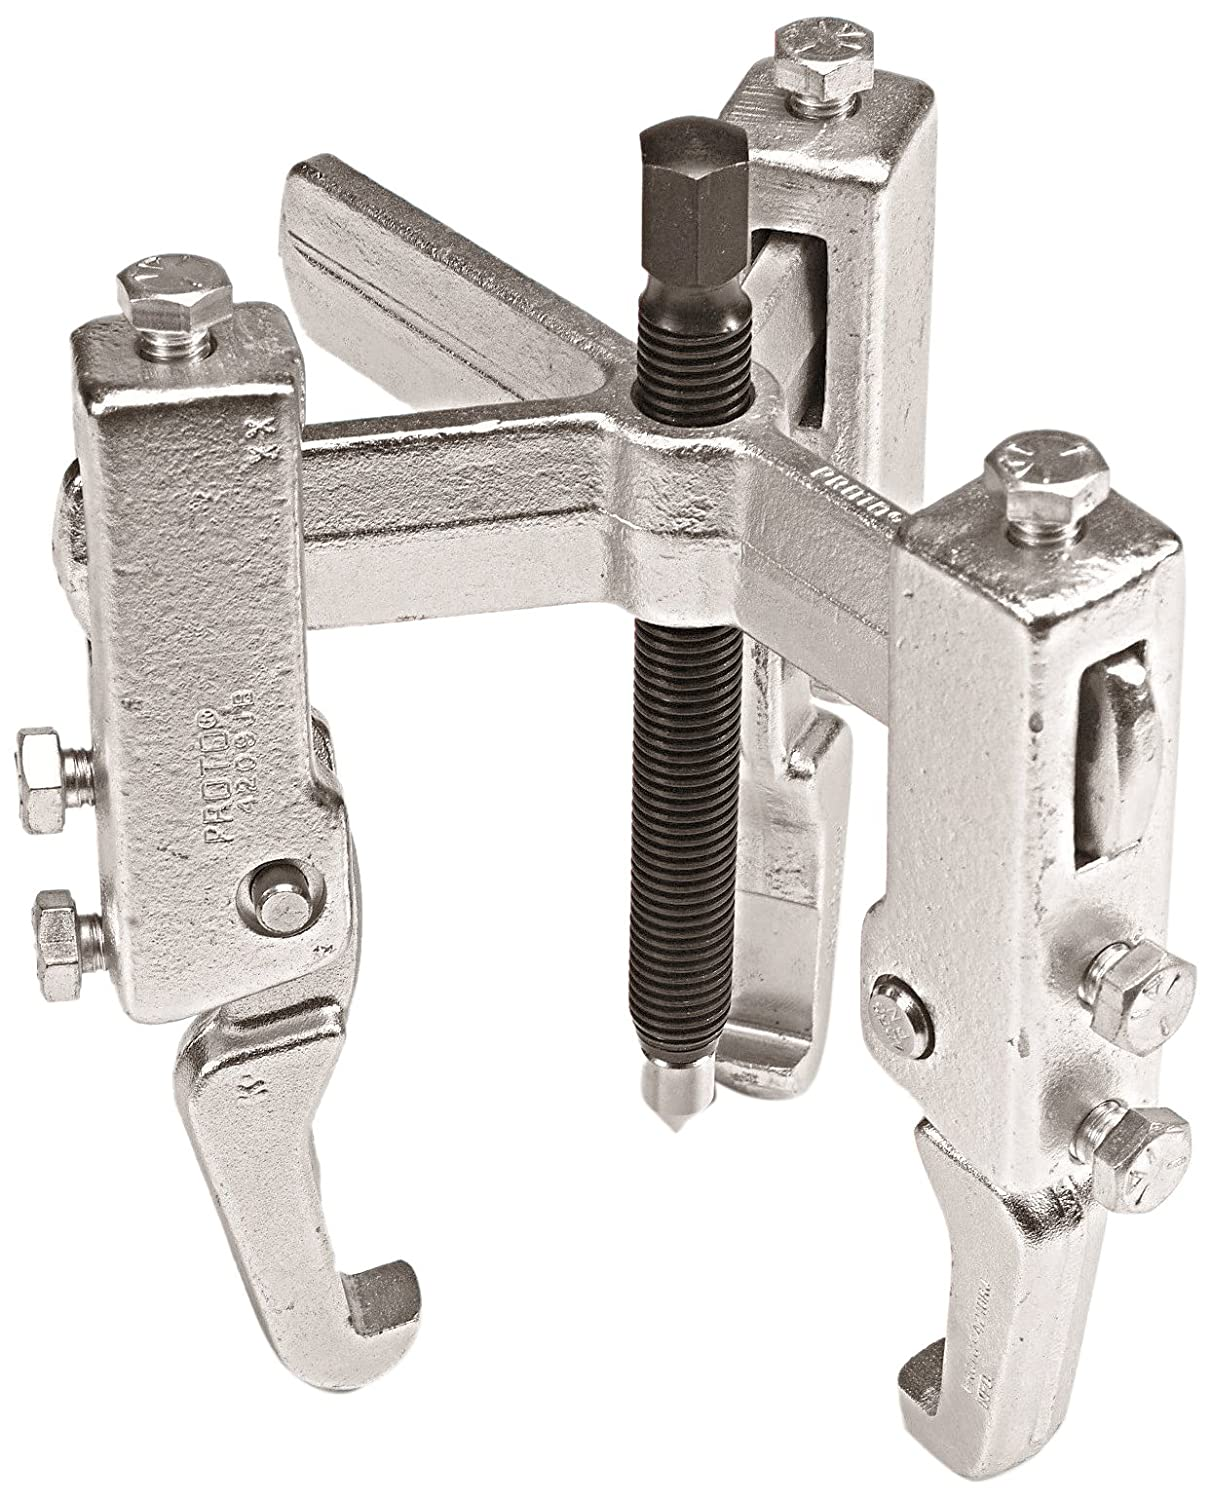 Stanley Proto J4217 6 Ton Ease 2-Way// 3-Way Adjustable Jaw Puller